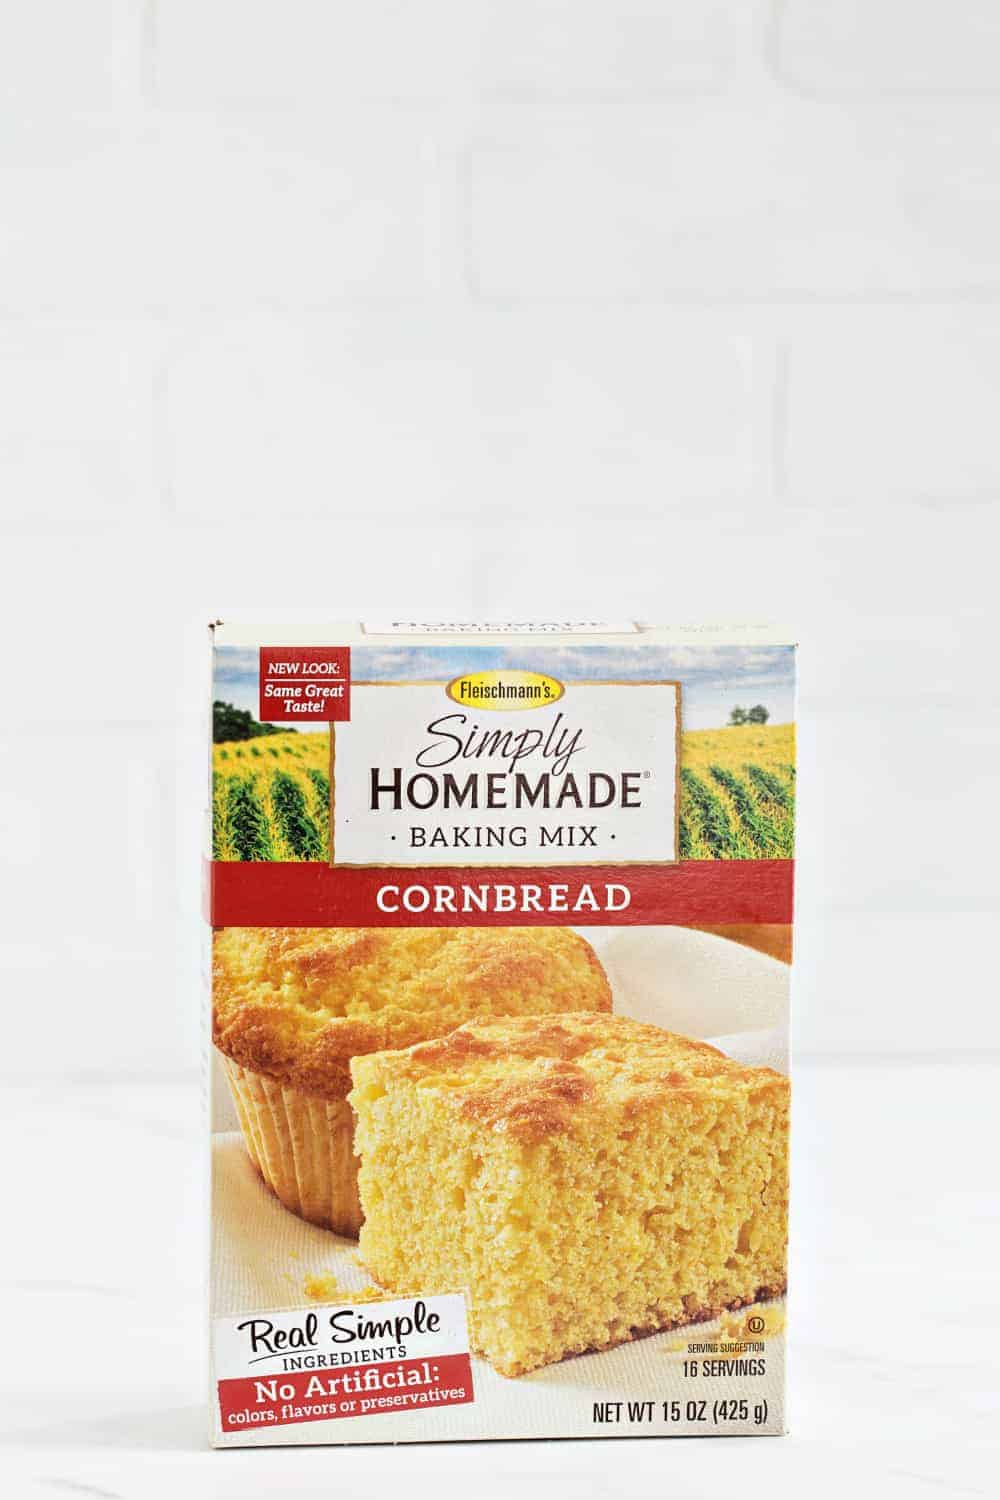 Easy Corn Casserole comes together in less than 10 minutes and is perfect for the holidays.